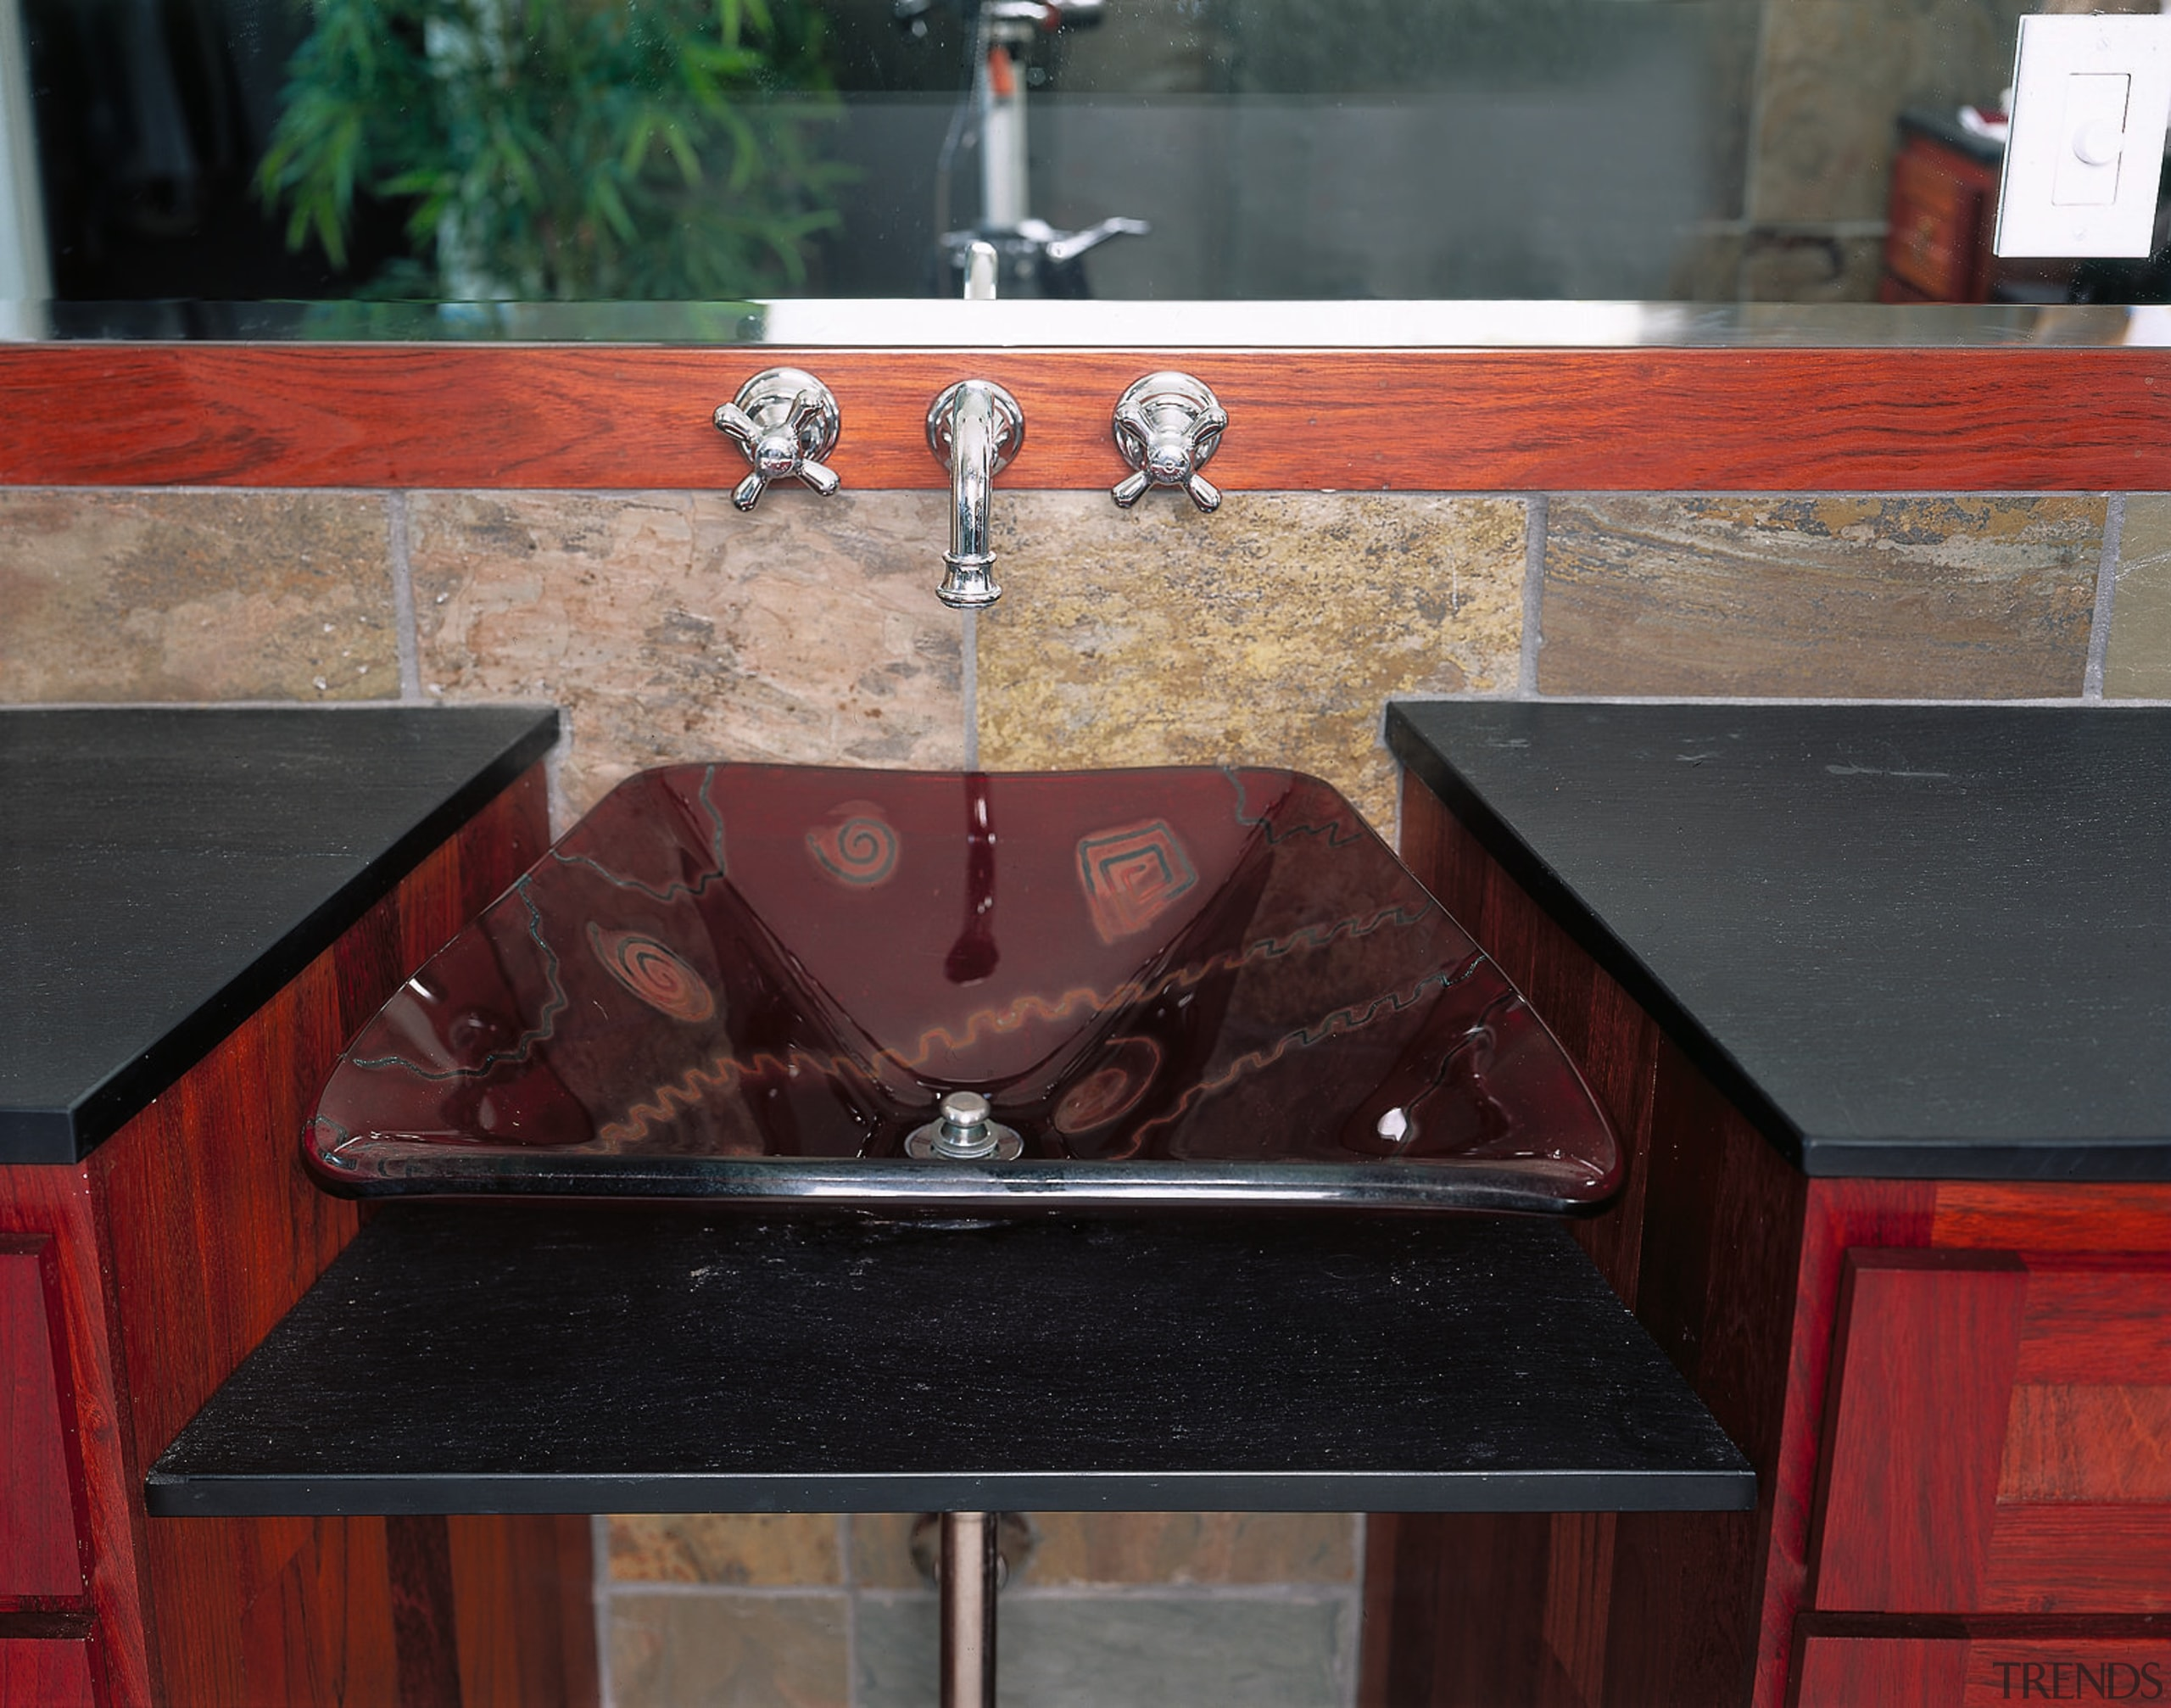 View of the hand basin - View of countertop, floor, granite, hardware, material, sink, wood stain, red, black